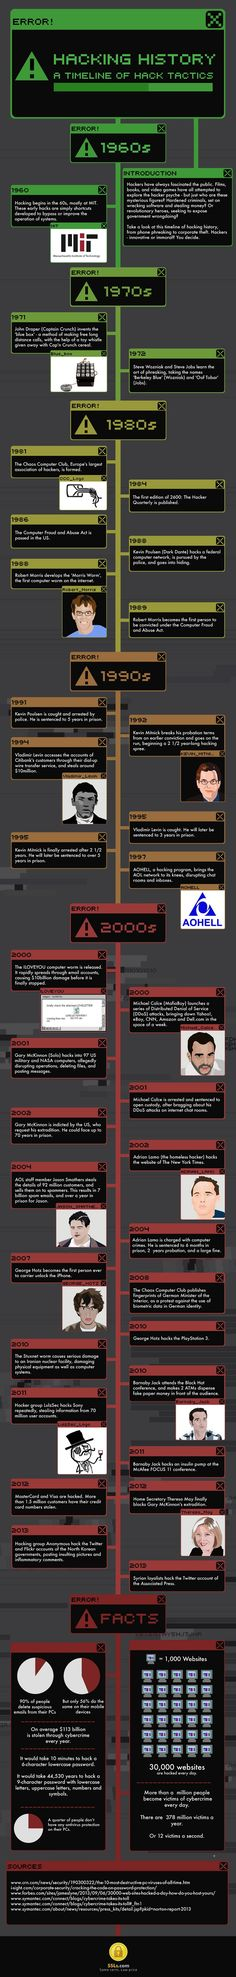 Hacking history - infografic